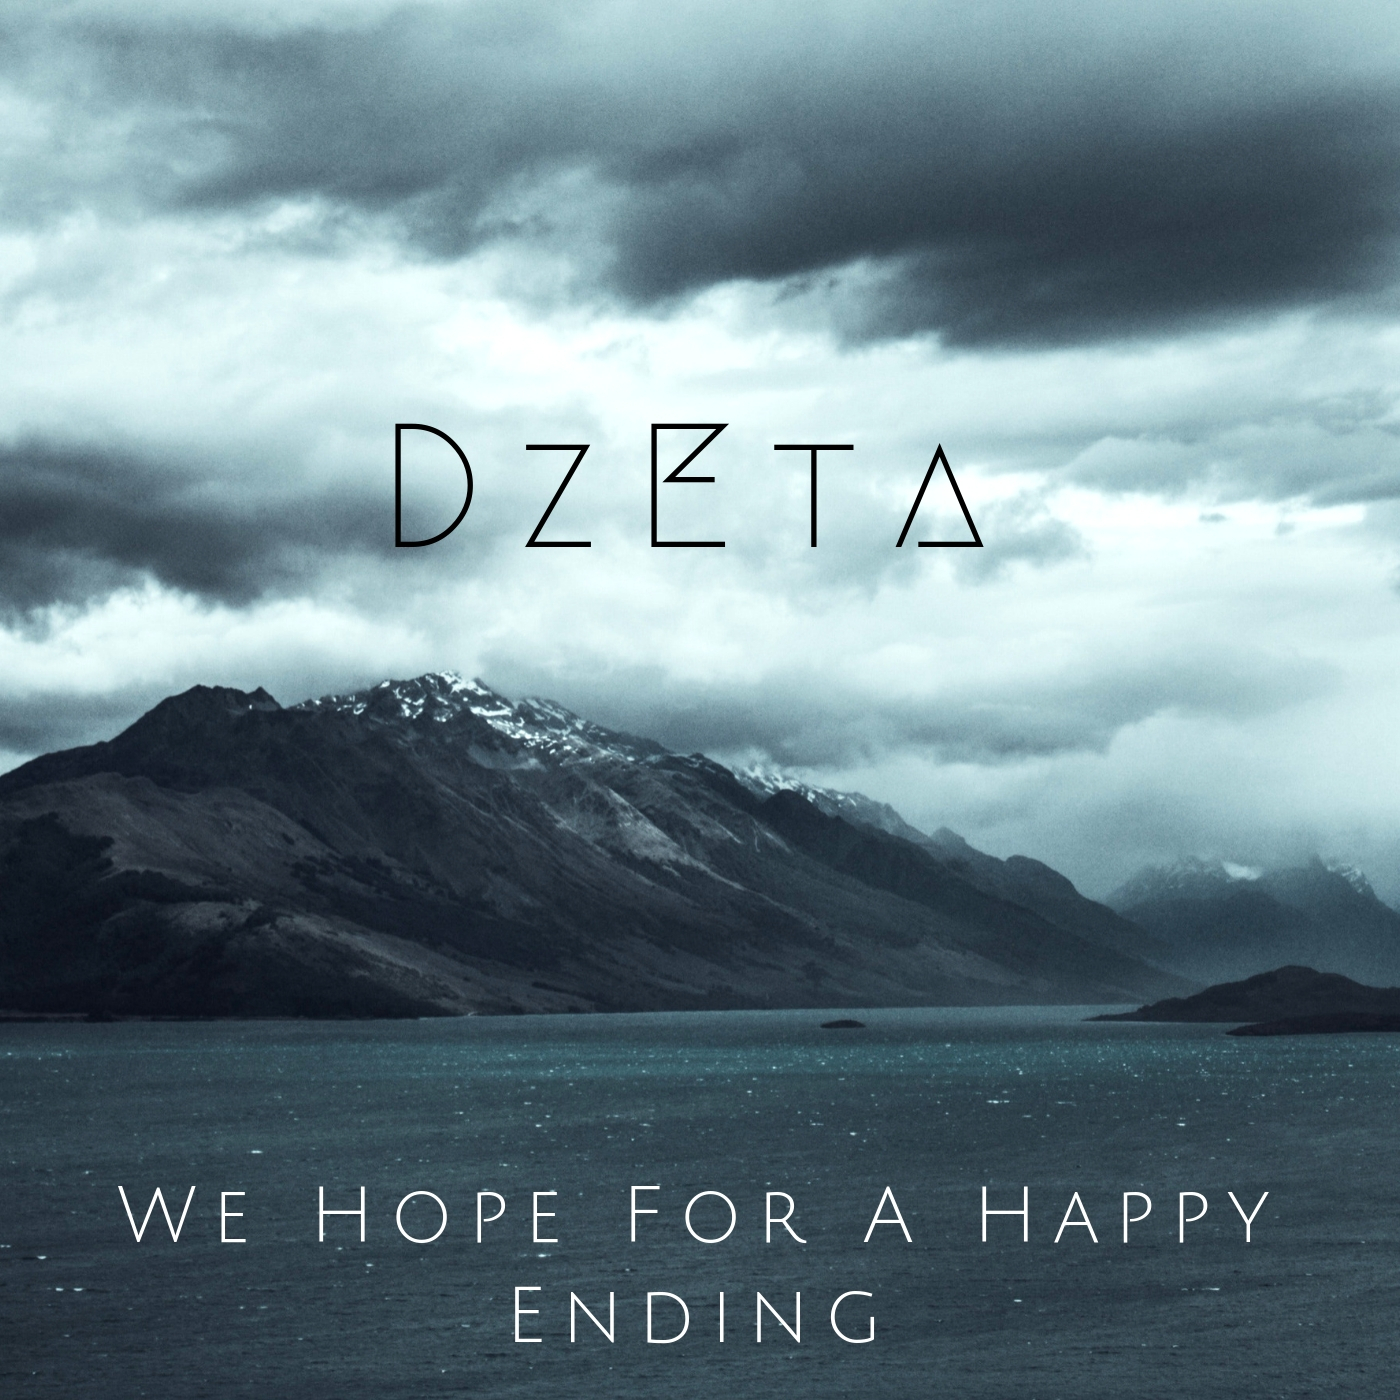 IYE36 - DzEta - we hope for a happy ending 4